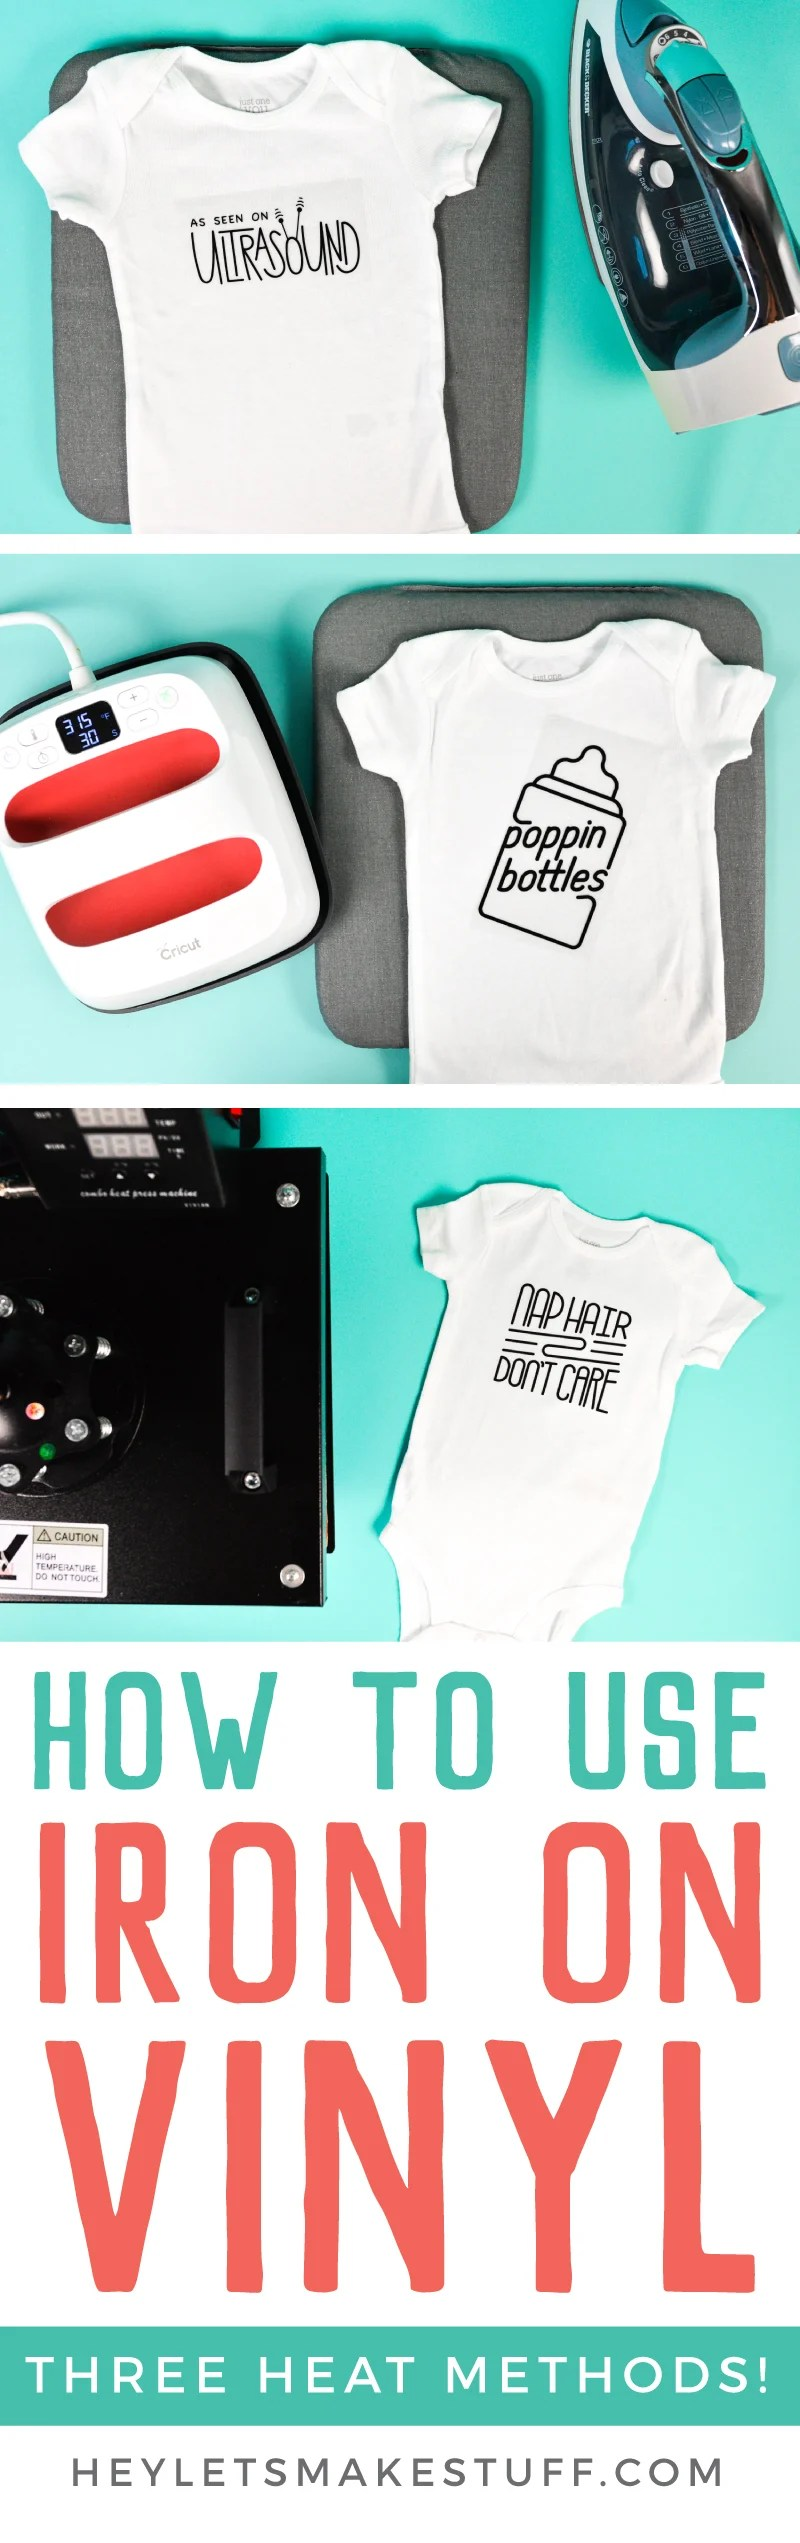 step by step instructions on how to use iron on vinyl (HTV) it to make these adorable bodysuits!